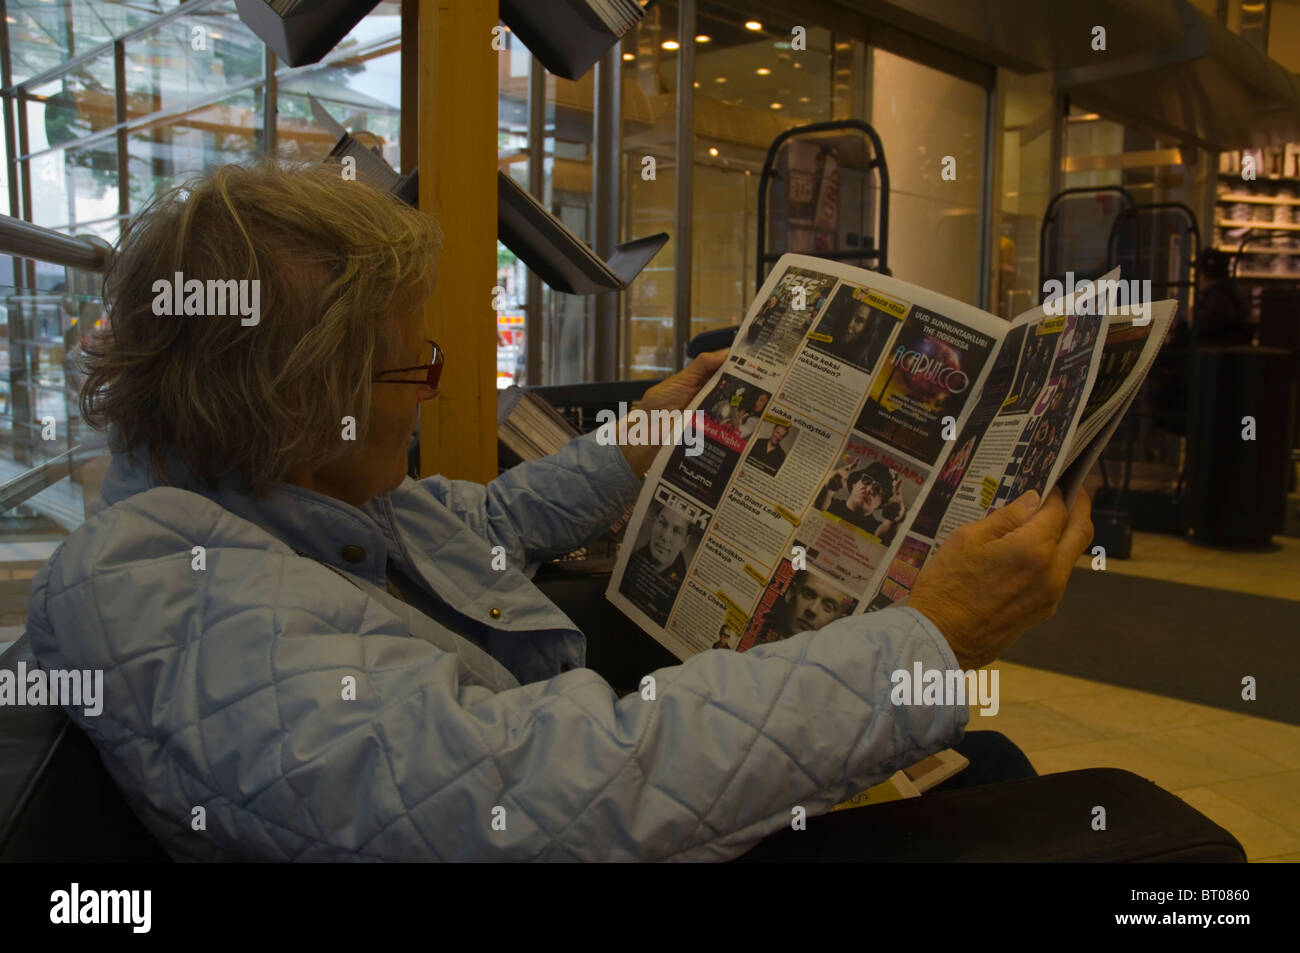 Senior woman reading ads in a free daily newspaper Helsinki Finland Europe - Stock Image